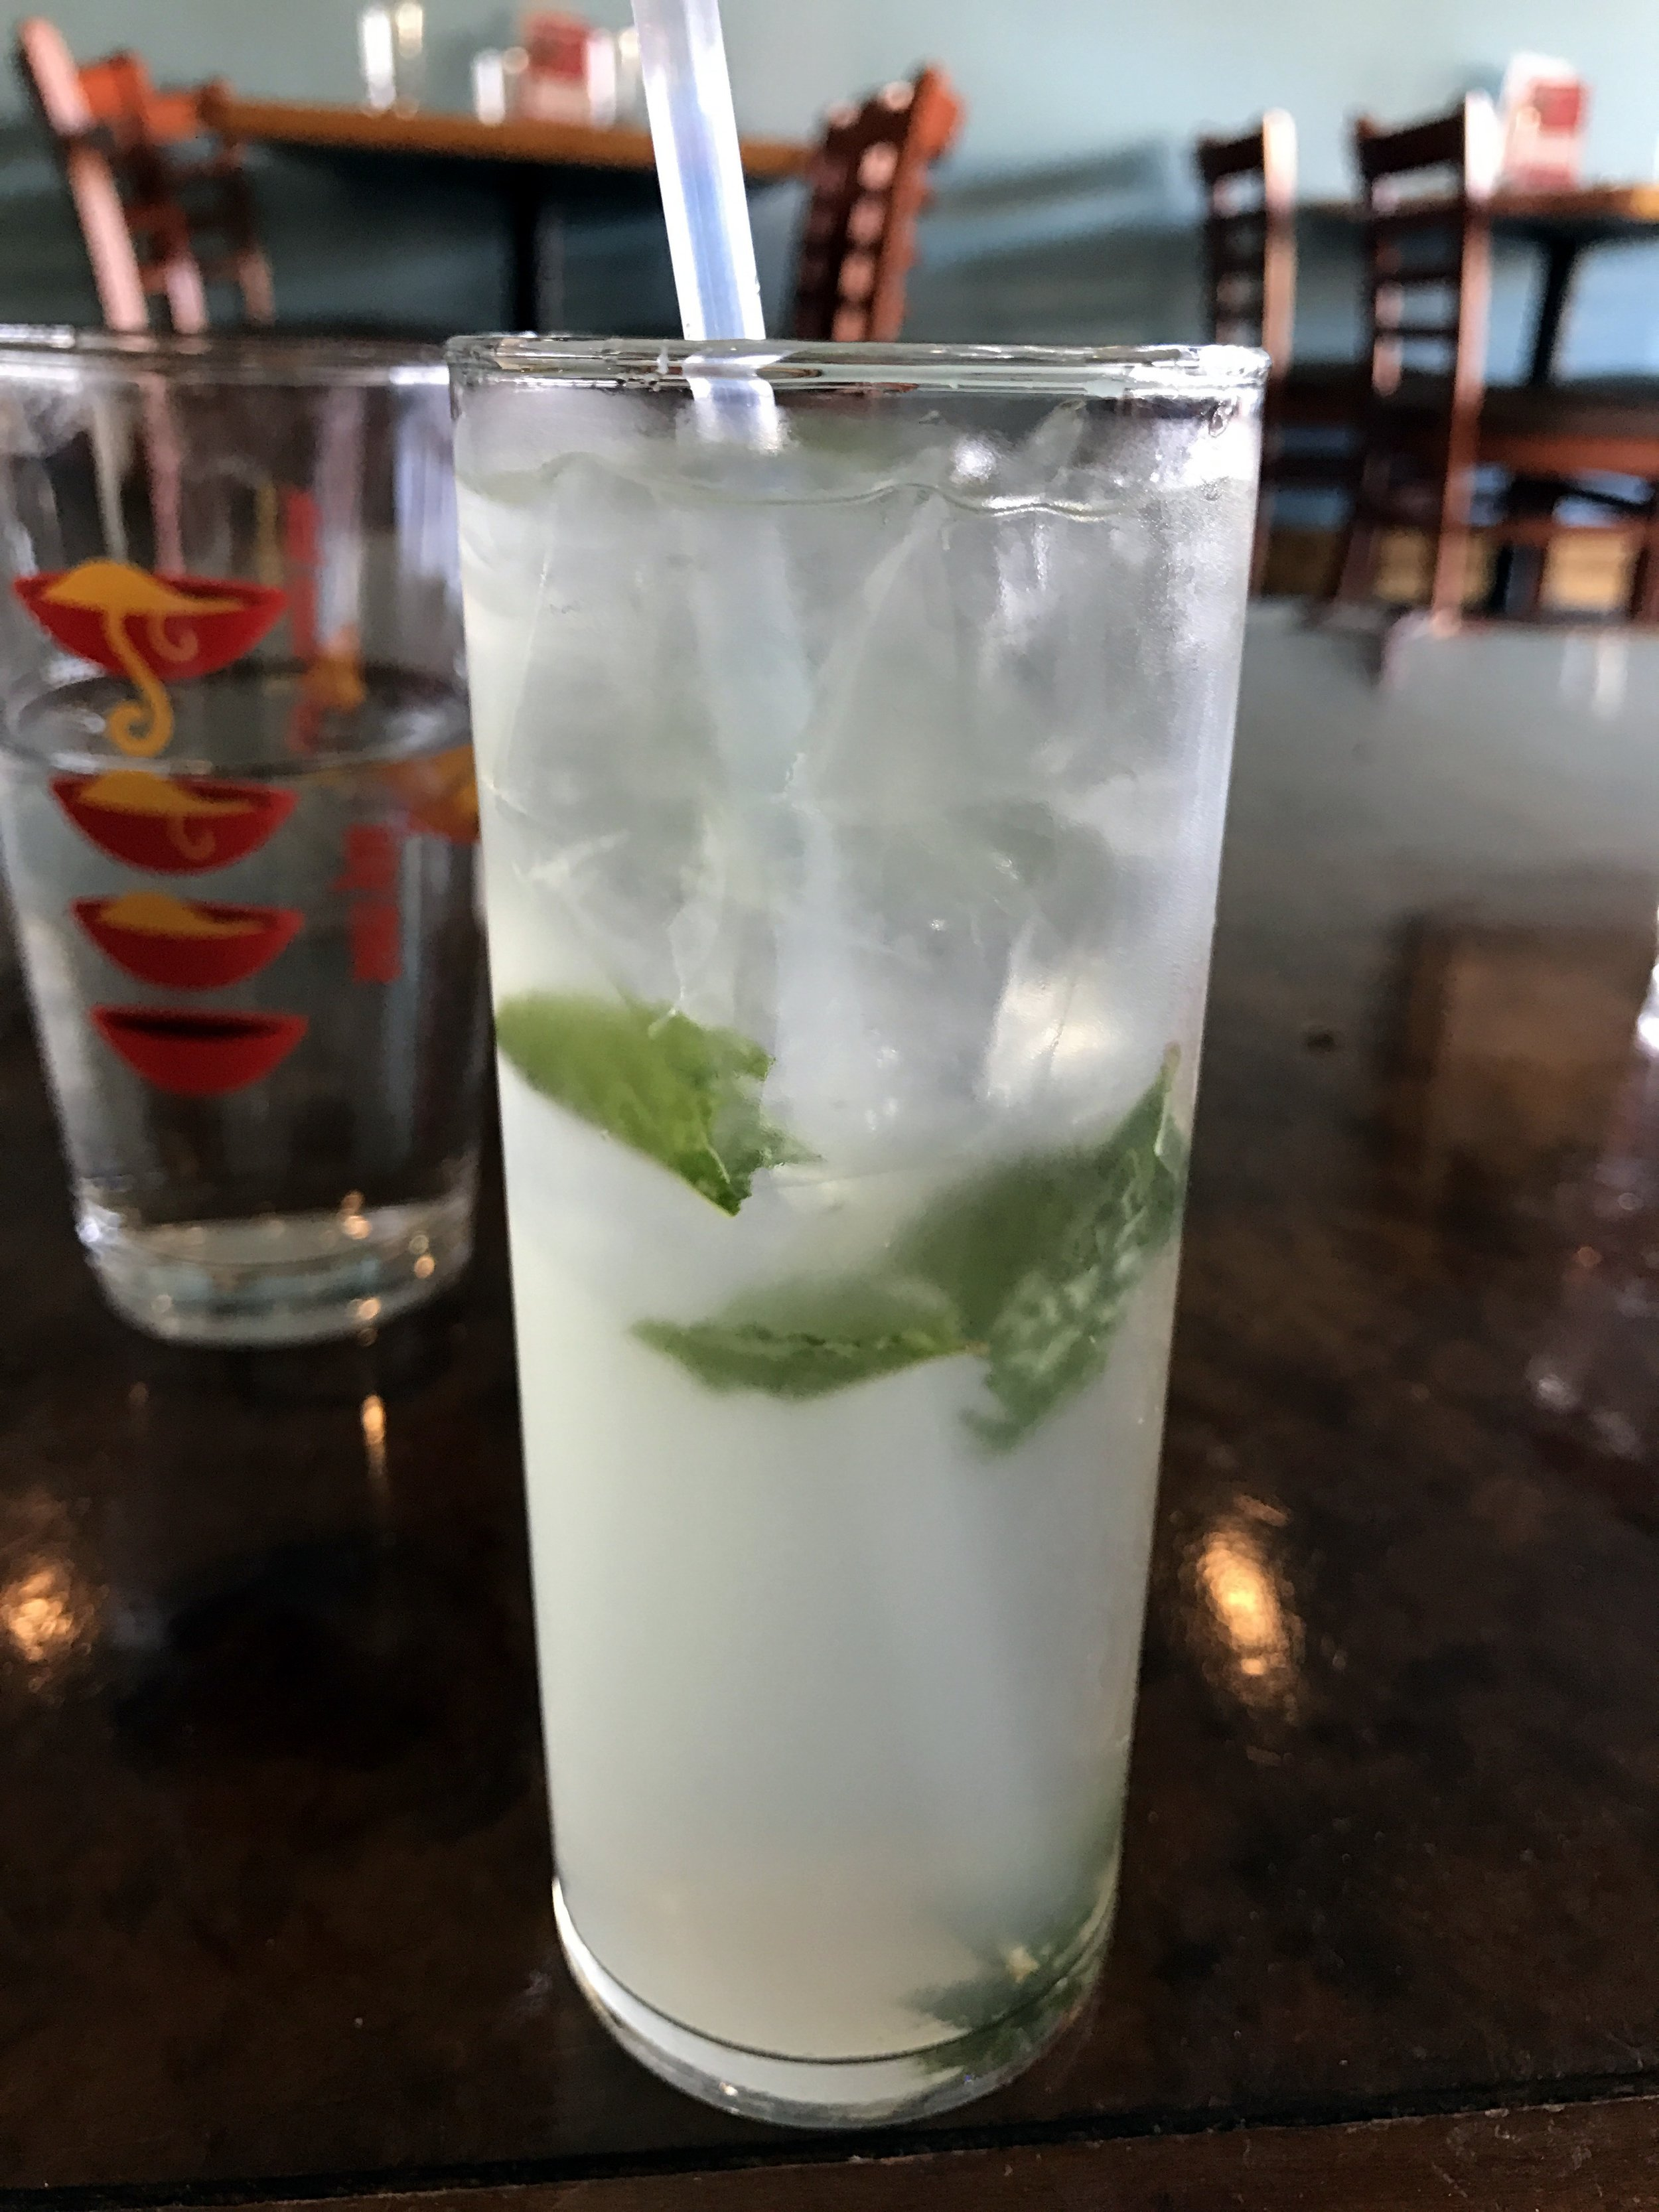 The Sugar & Spice: a white wine cocktail with mint, lychee, and a homemade Thai chili syrup